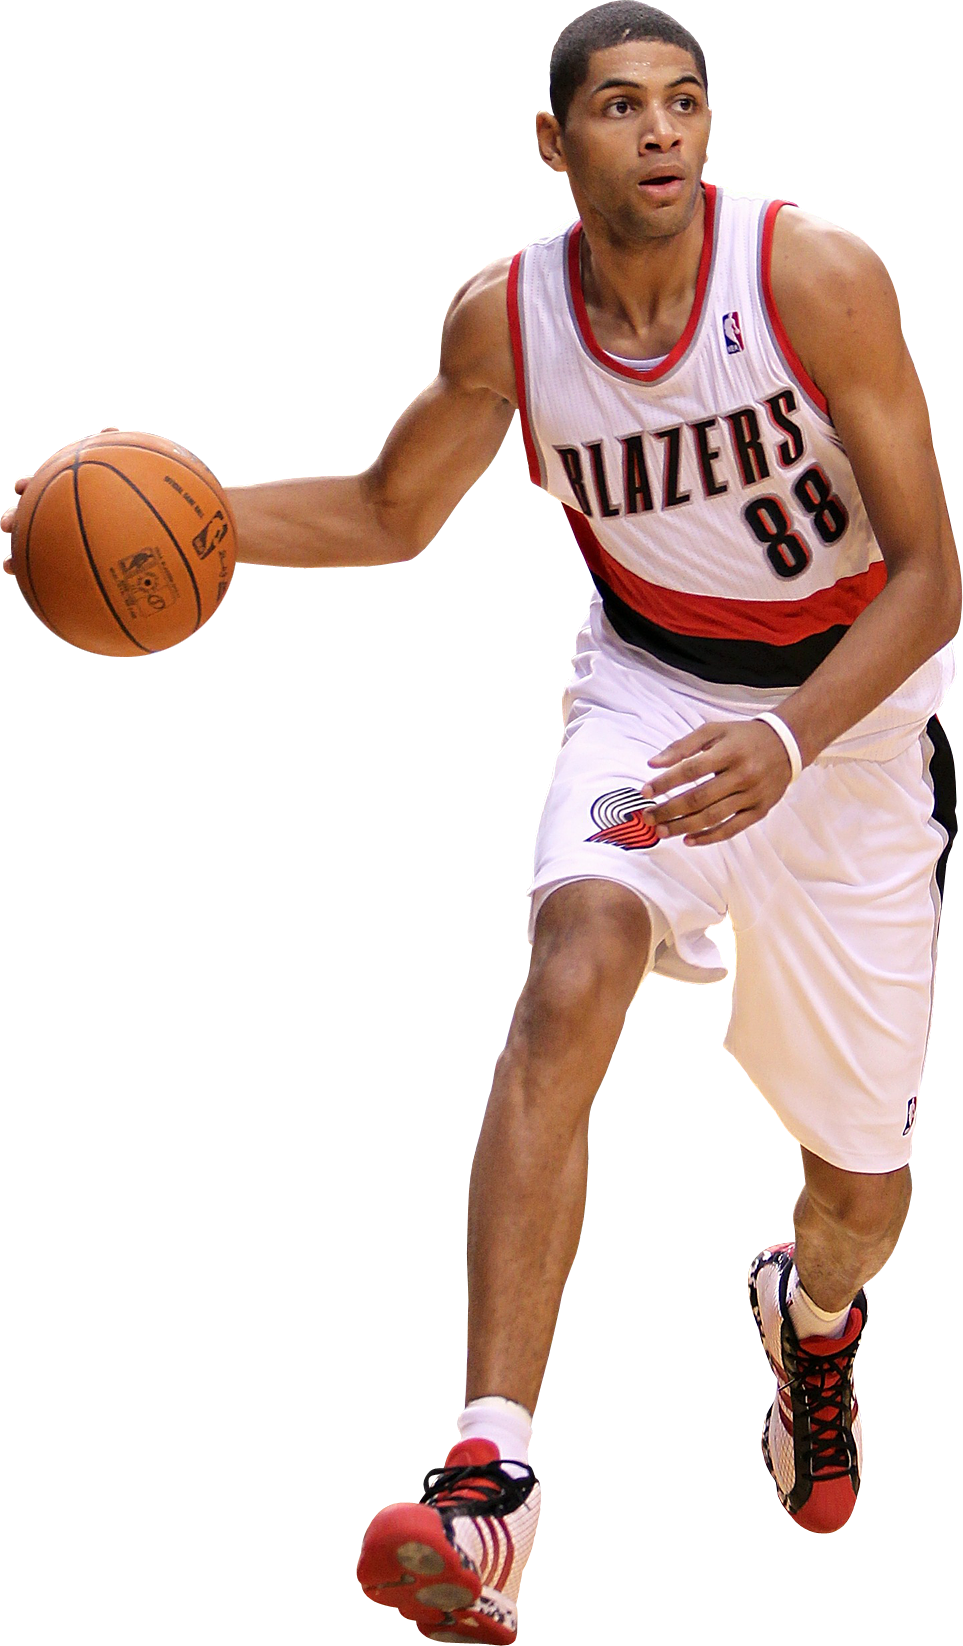 Kevin Durant Png Google Search Nba Players Kevin Durant Kevin Garnett